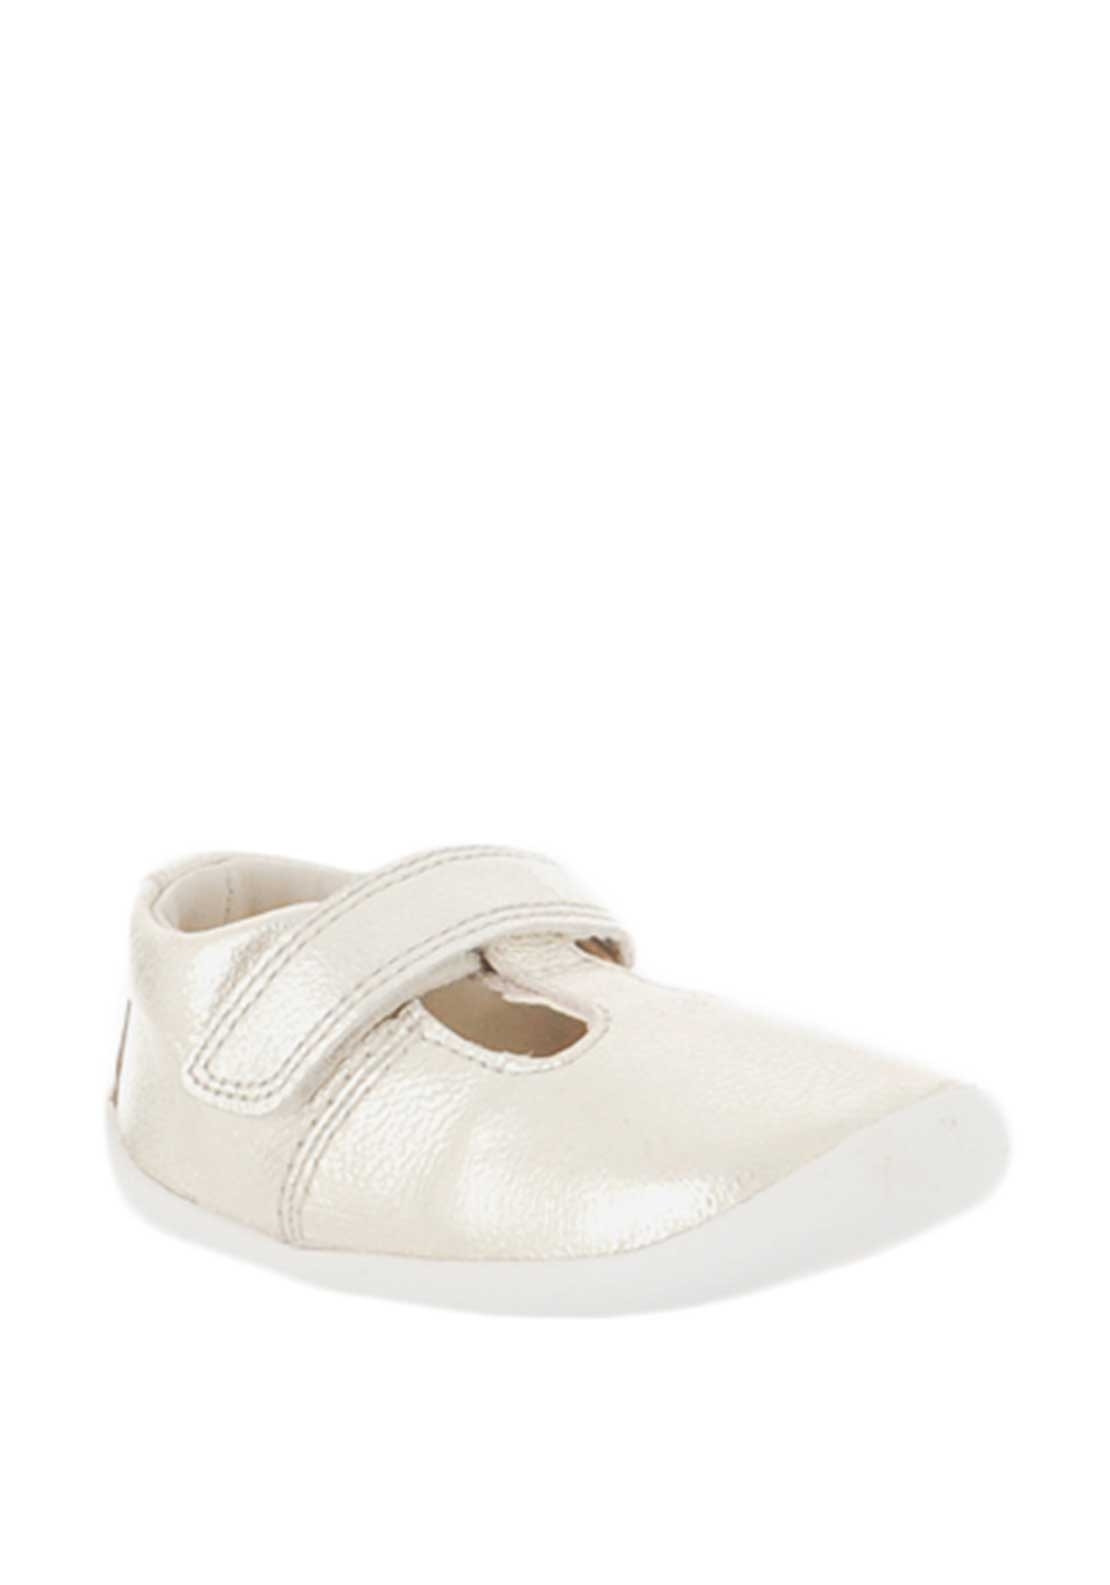 c0b272e7402 Clarks Baby Girl Roamer Go Pre-Walking Shoes, Metallic Gold. Be the first  to review this product